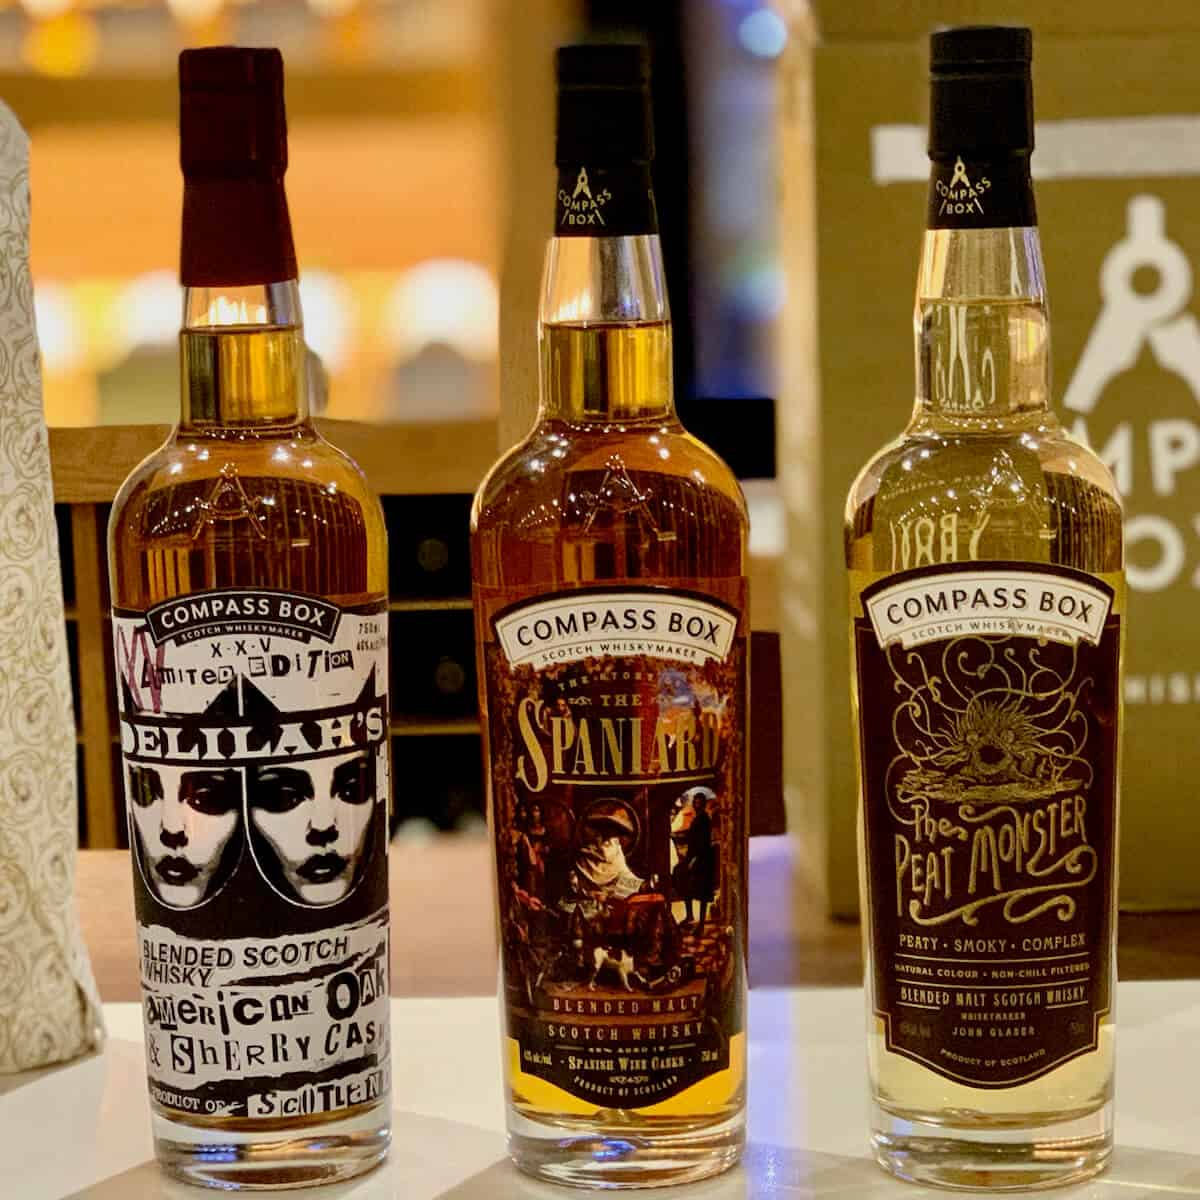 Compass Box Blended Scotch partial lineup in bottles on a counter.